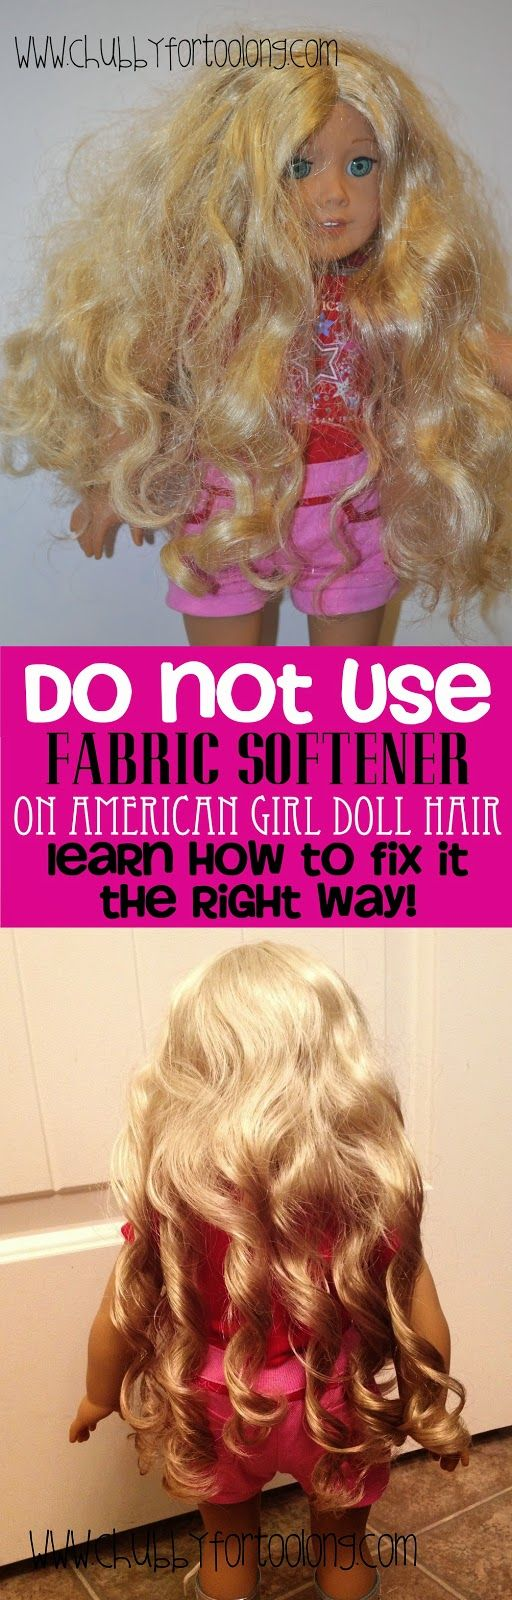 Chubby for too long!   How to fix Curly American Girl Doll Hair http://www.chubbyfortoolong.com/2015/03/how-to-fix-curly-american-girl-doll-hair.html